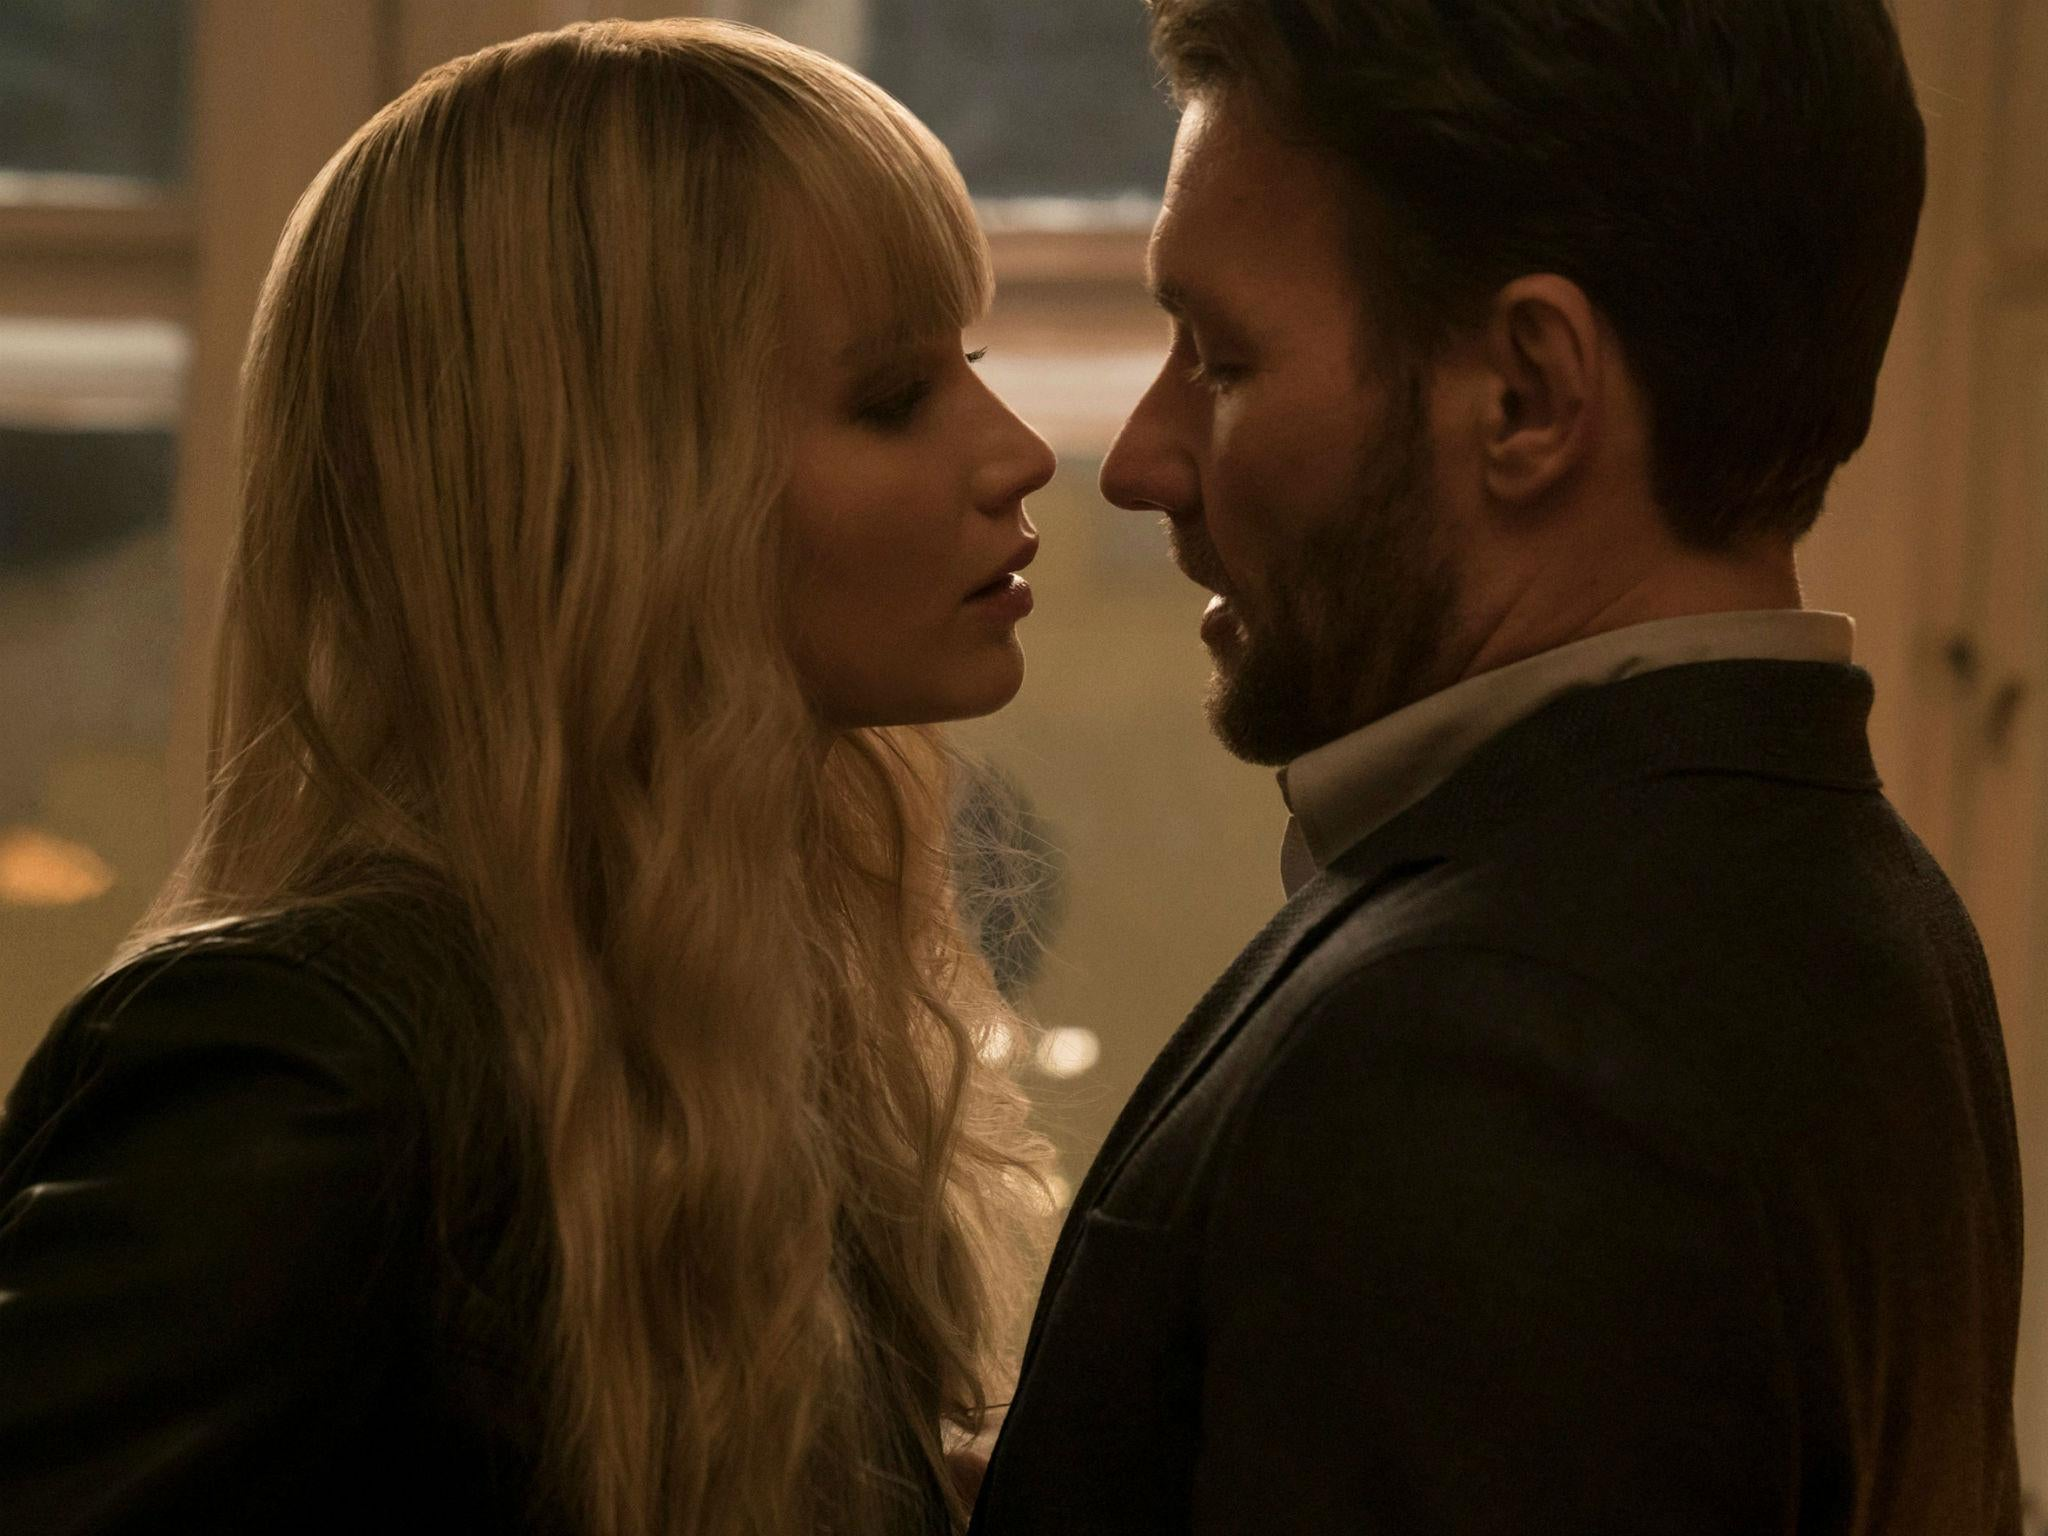 Red Sparrow and Peter Rabbit were most complained-about films in UK last year